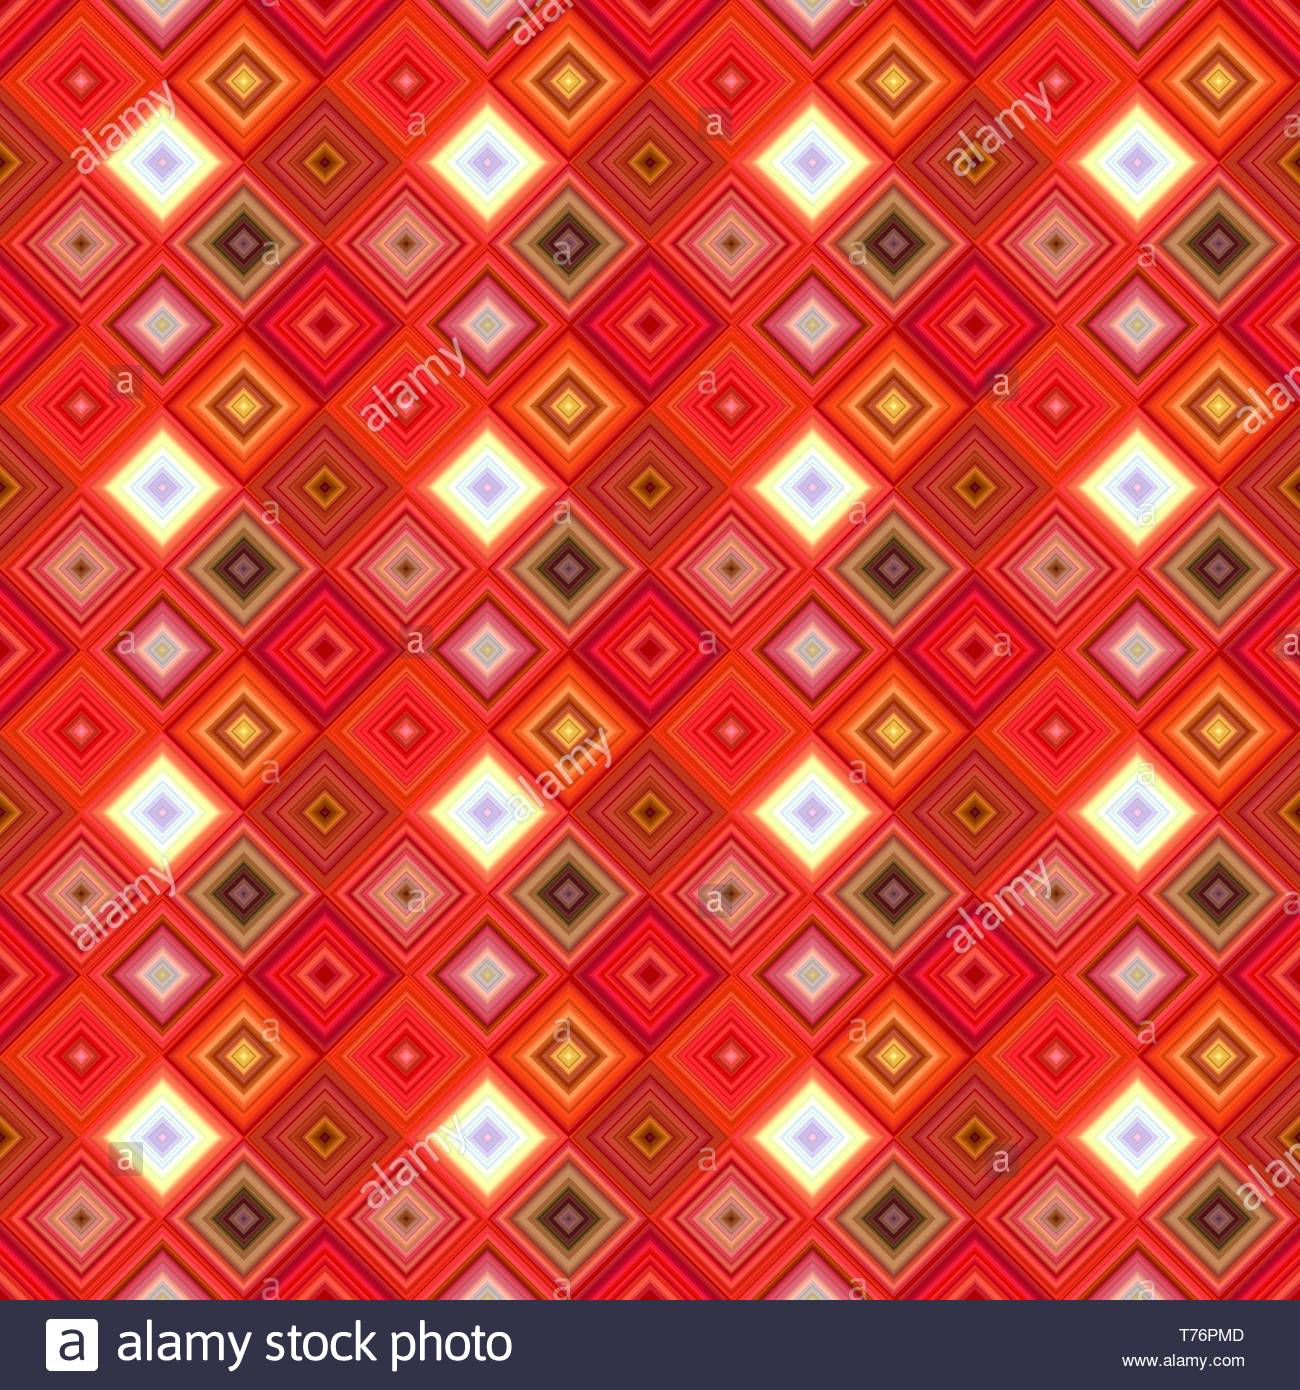 Colorful geometrical diagonal square mosaic pattern background 1300x1390